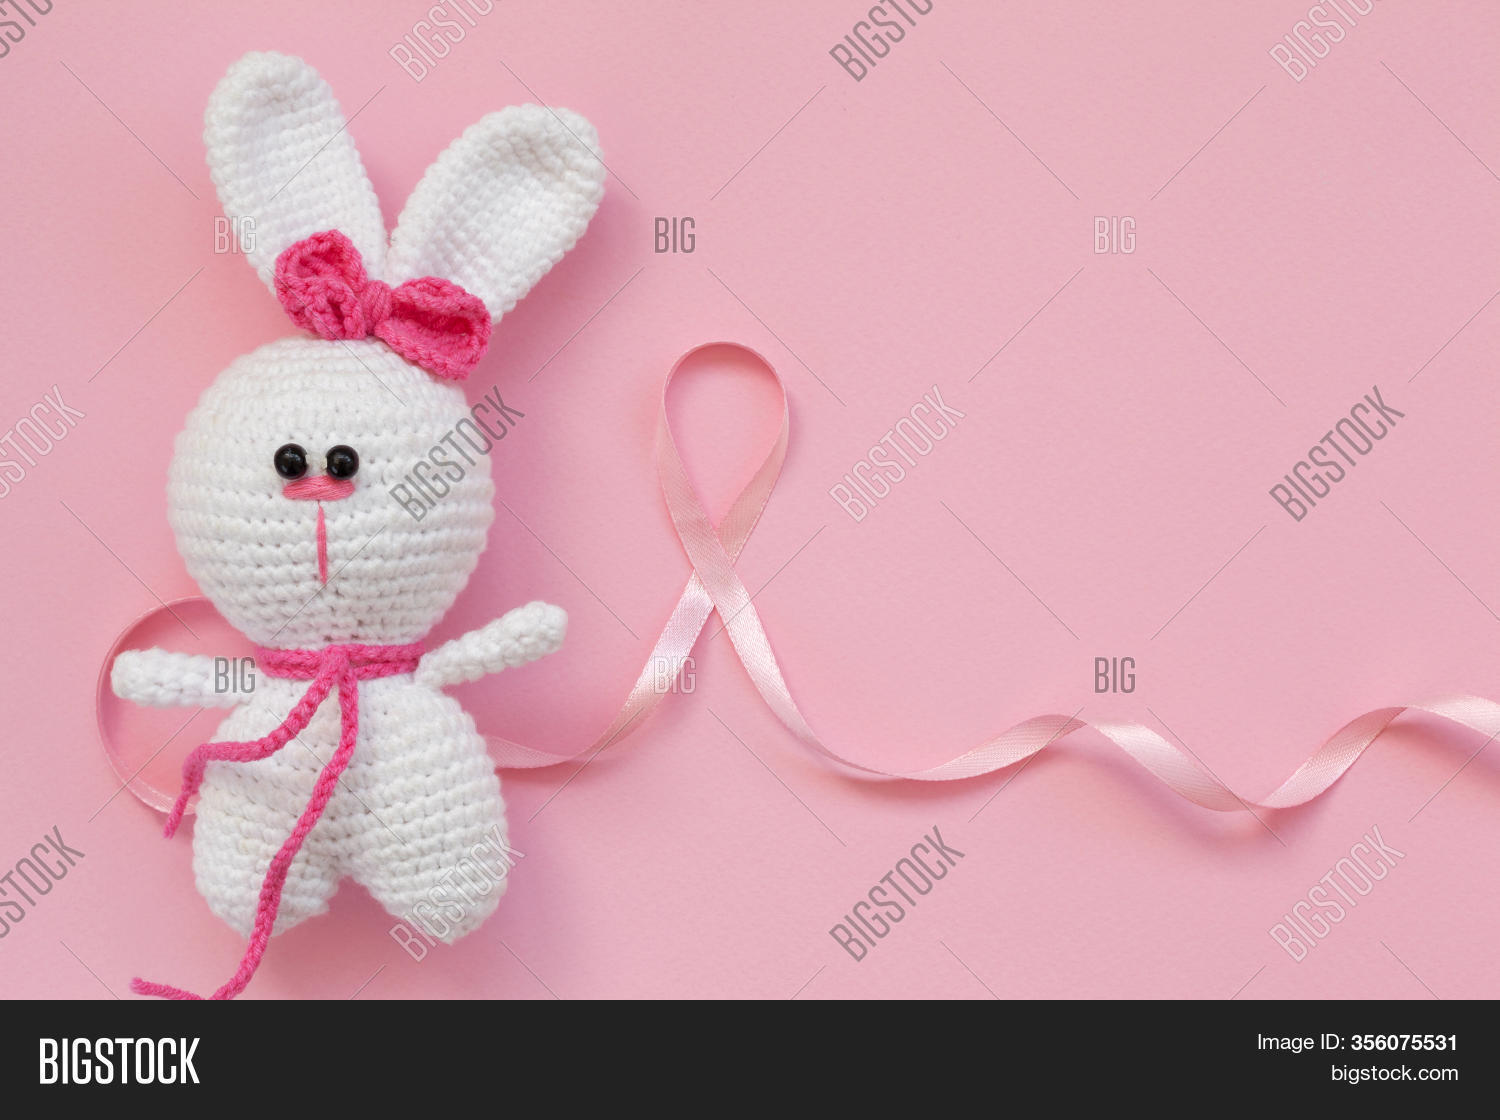 Easter Bunny Breast Picture photo 22